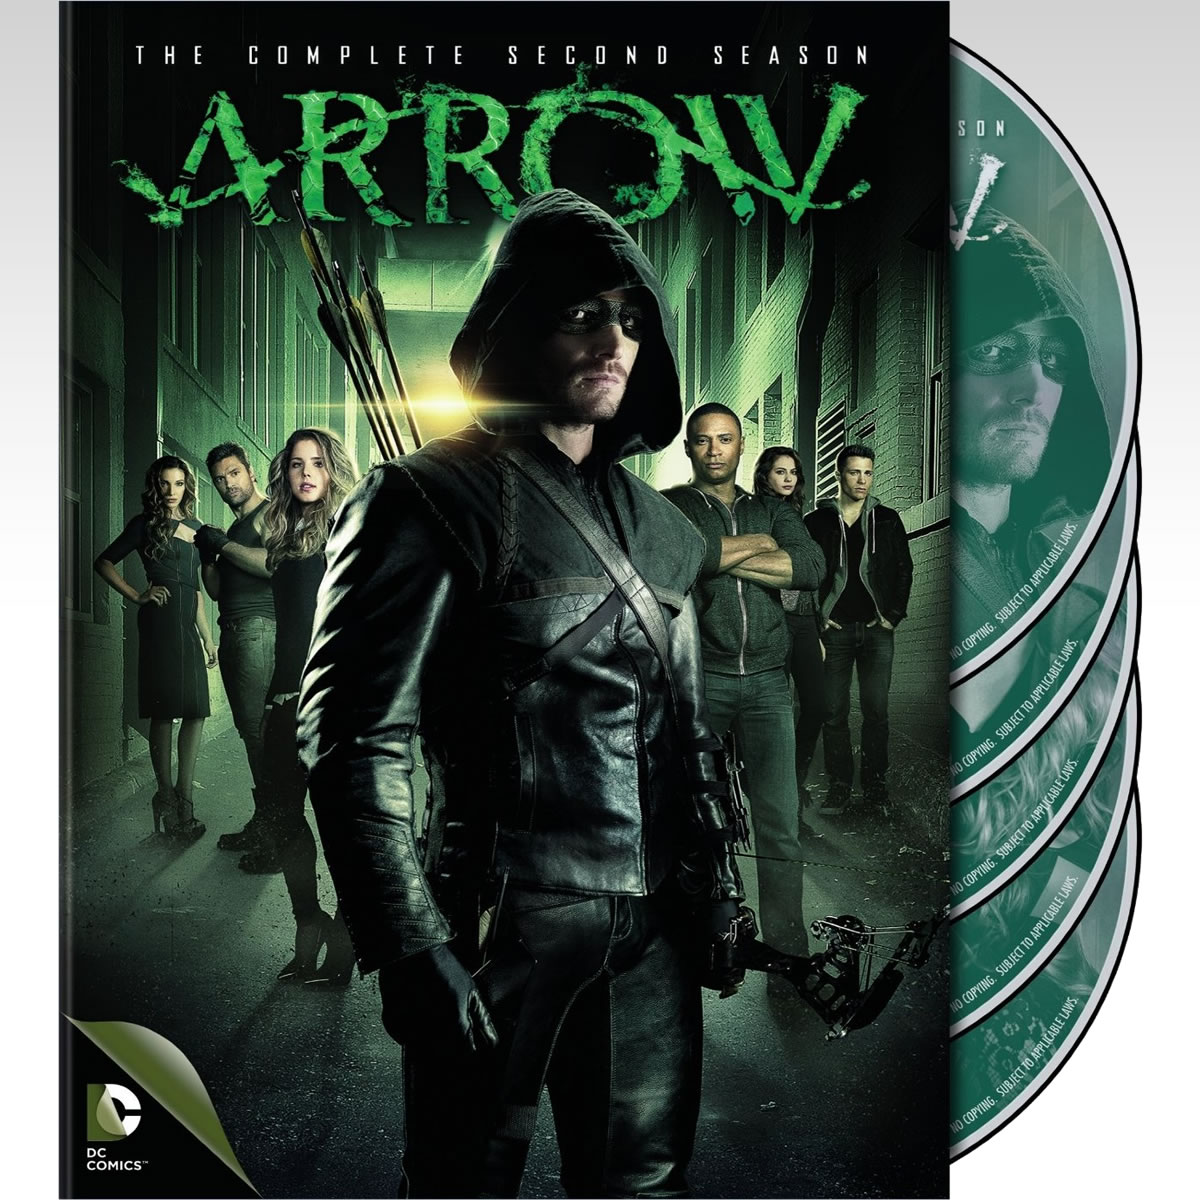 ARROW: THE COMPLETE 2st SEASON - ARROW: 2� �������� (5 DVDs)